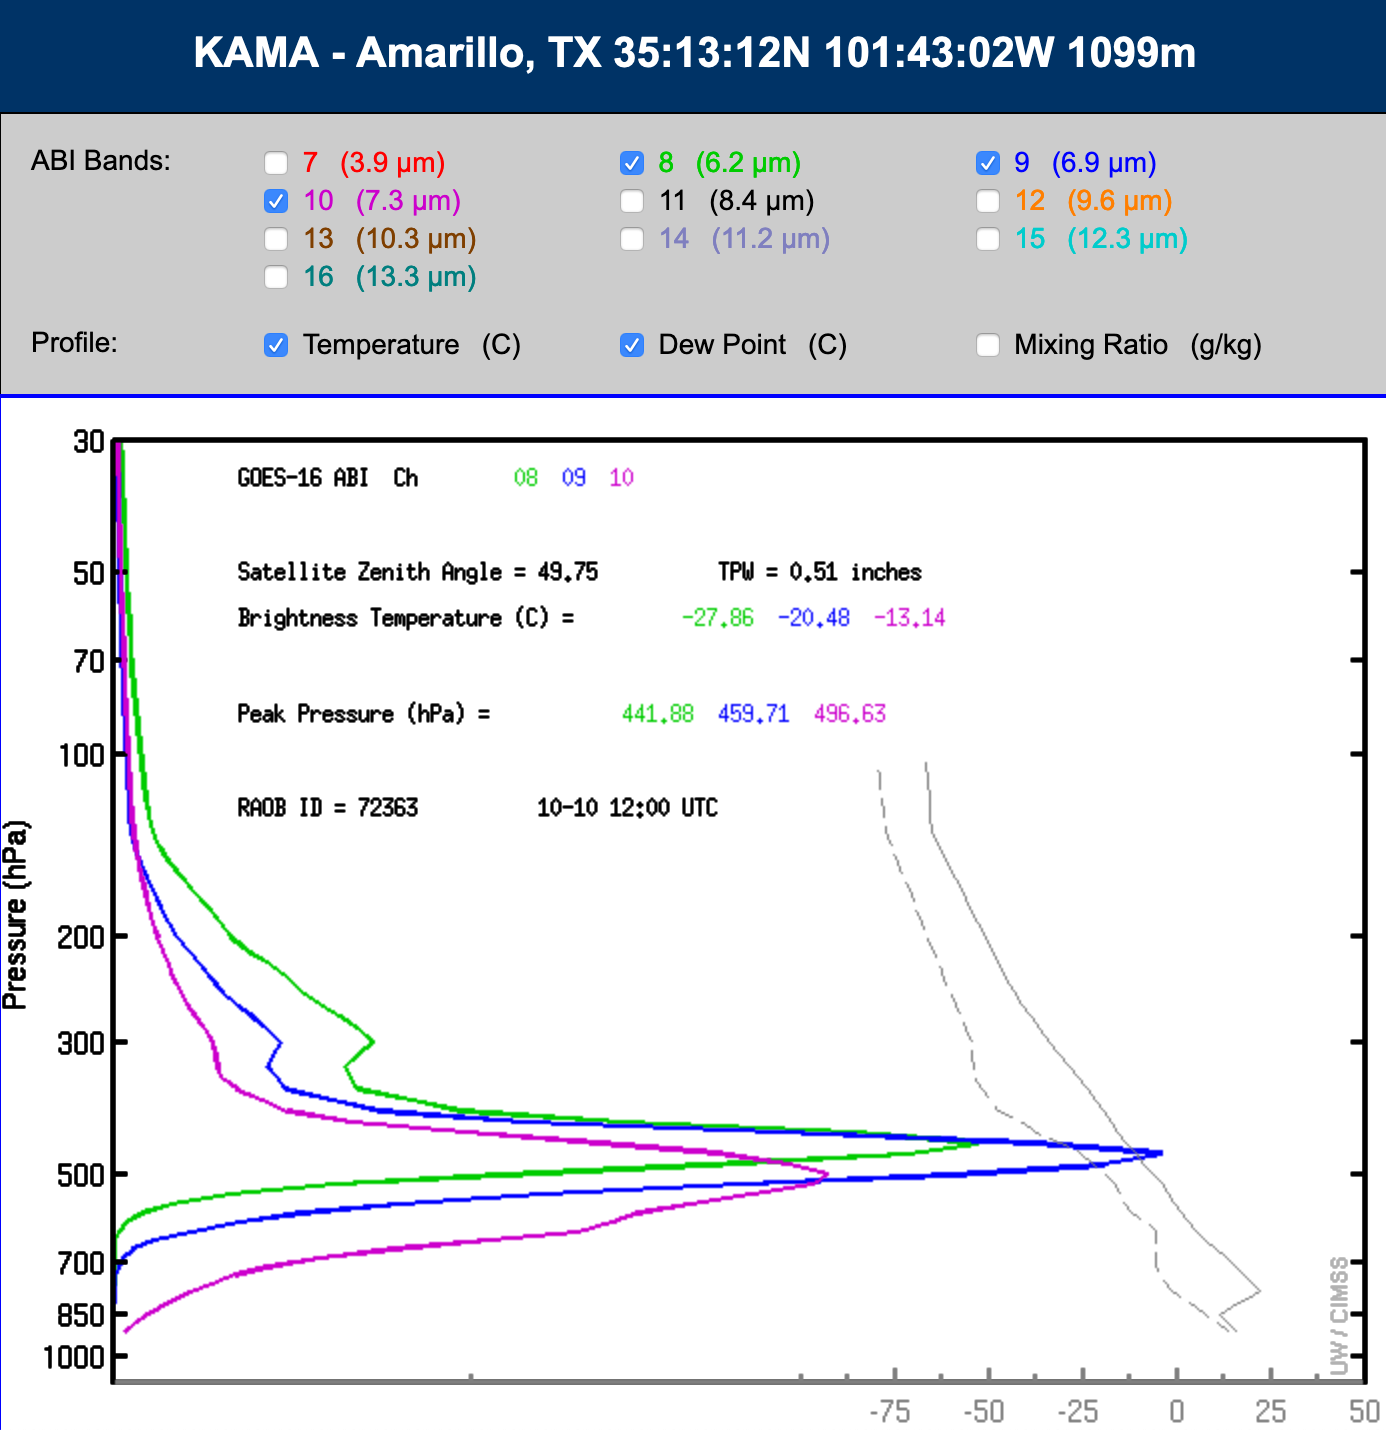 GOES-16 Water Vapor weighting functions, calculated using 12 UTC rawinsonde data from Amarillo, Texas [click to enlarge]